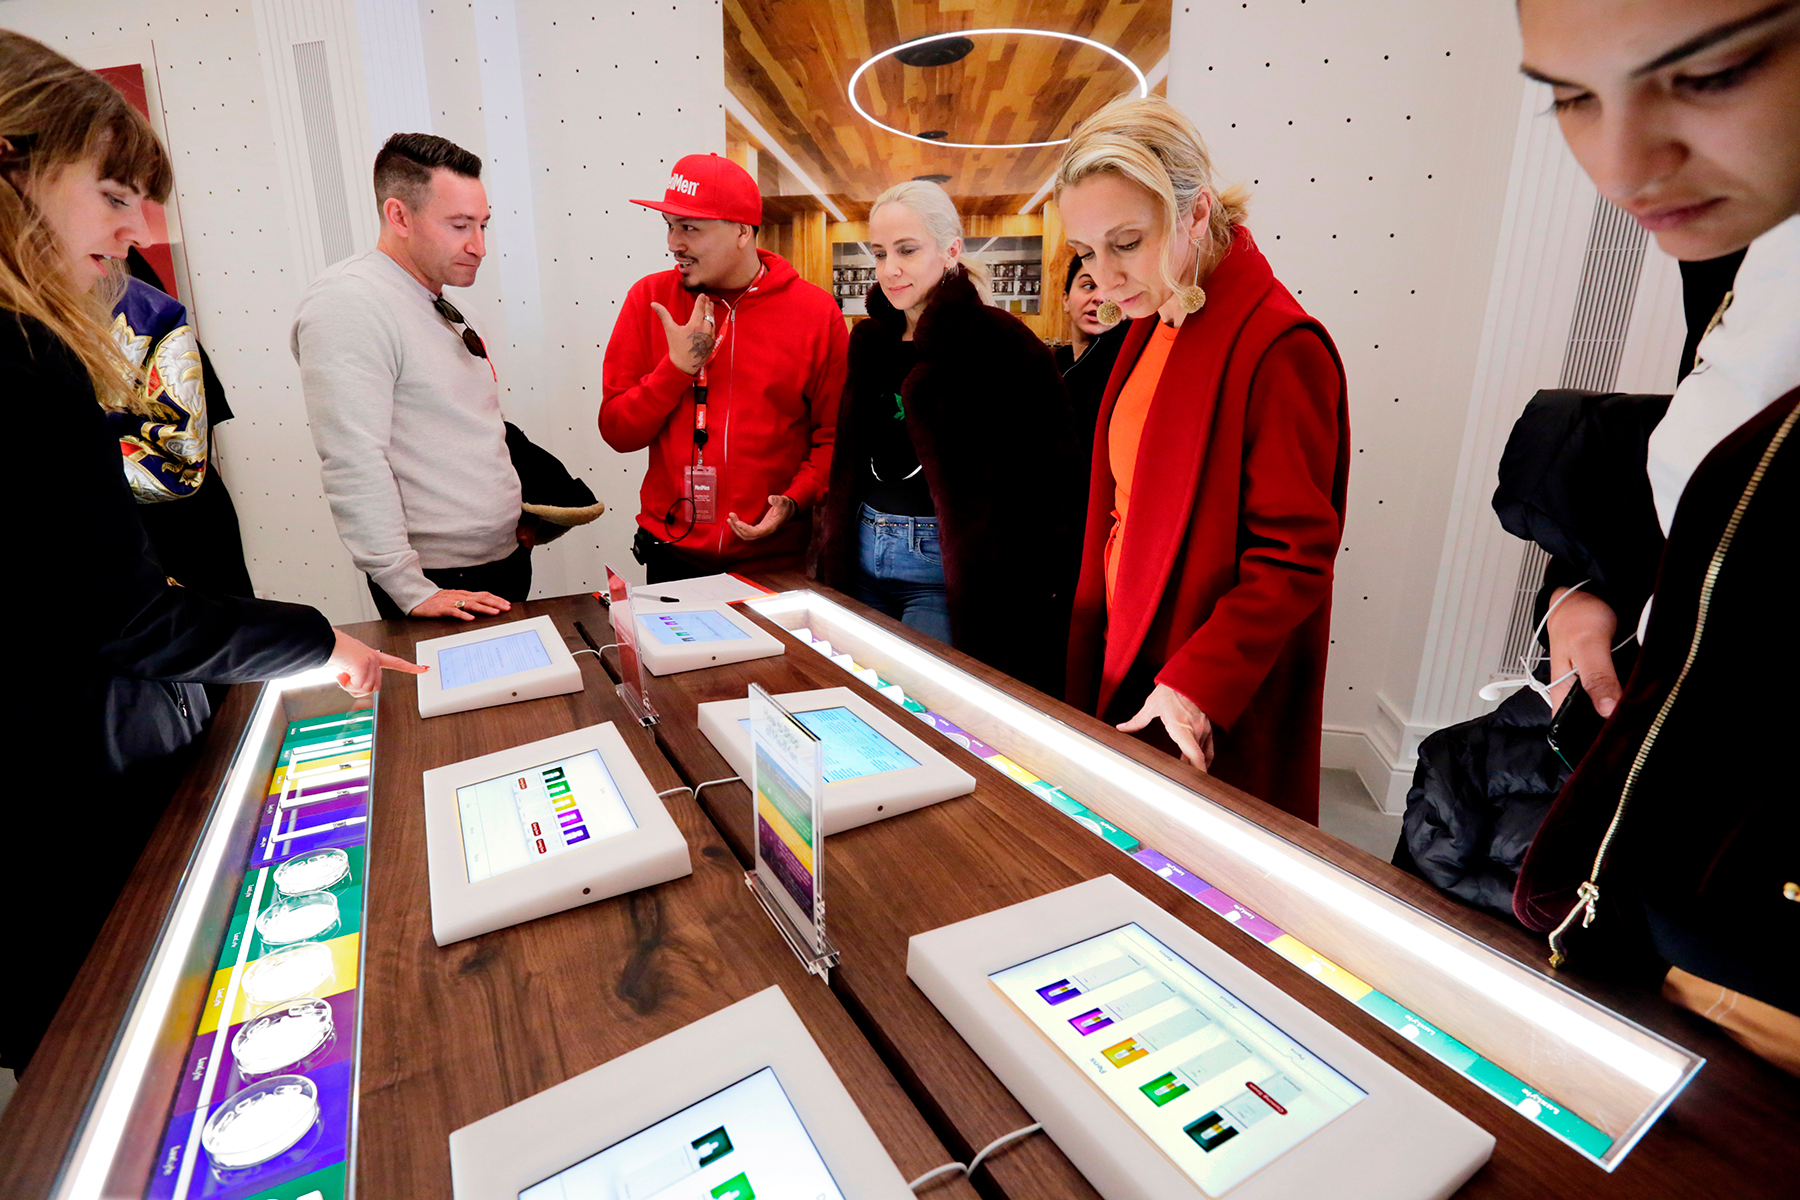 Customers of MedMen listen to an employees describe products in the new store on New York's Fifth Avenue, Friday, April 20, 2018. MedMen owns and operates licensed cannabis facilities in cultivation, manufacturing and retail.(AP Photo/Richard Drew)